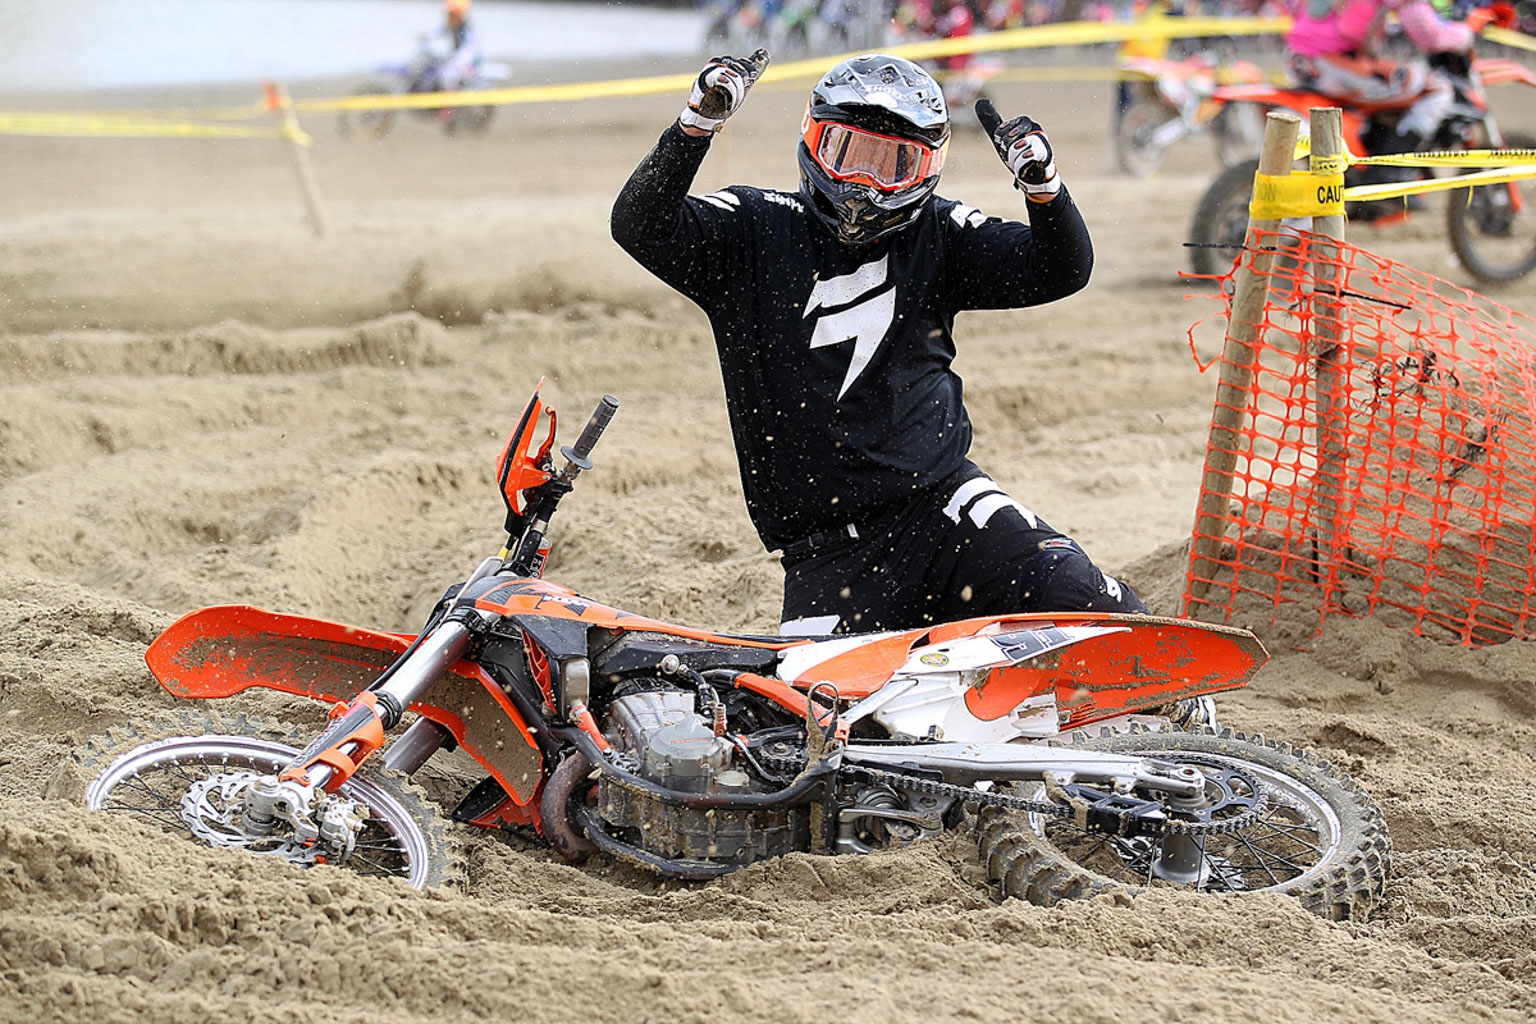 Matt Carrier having fun at Weymouth